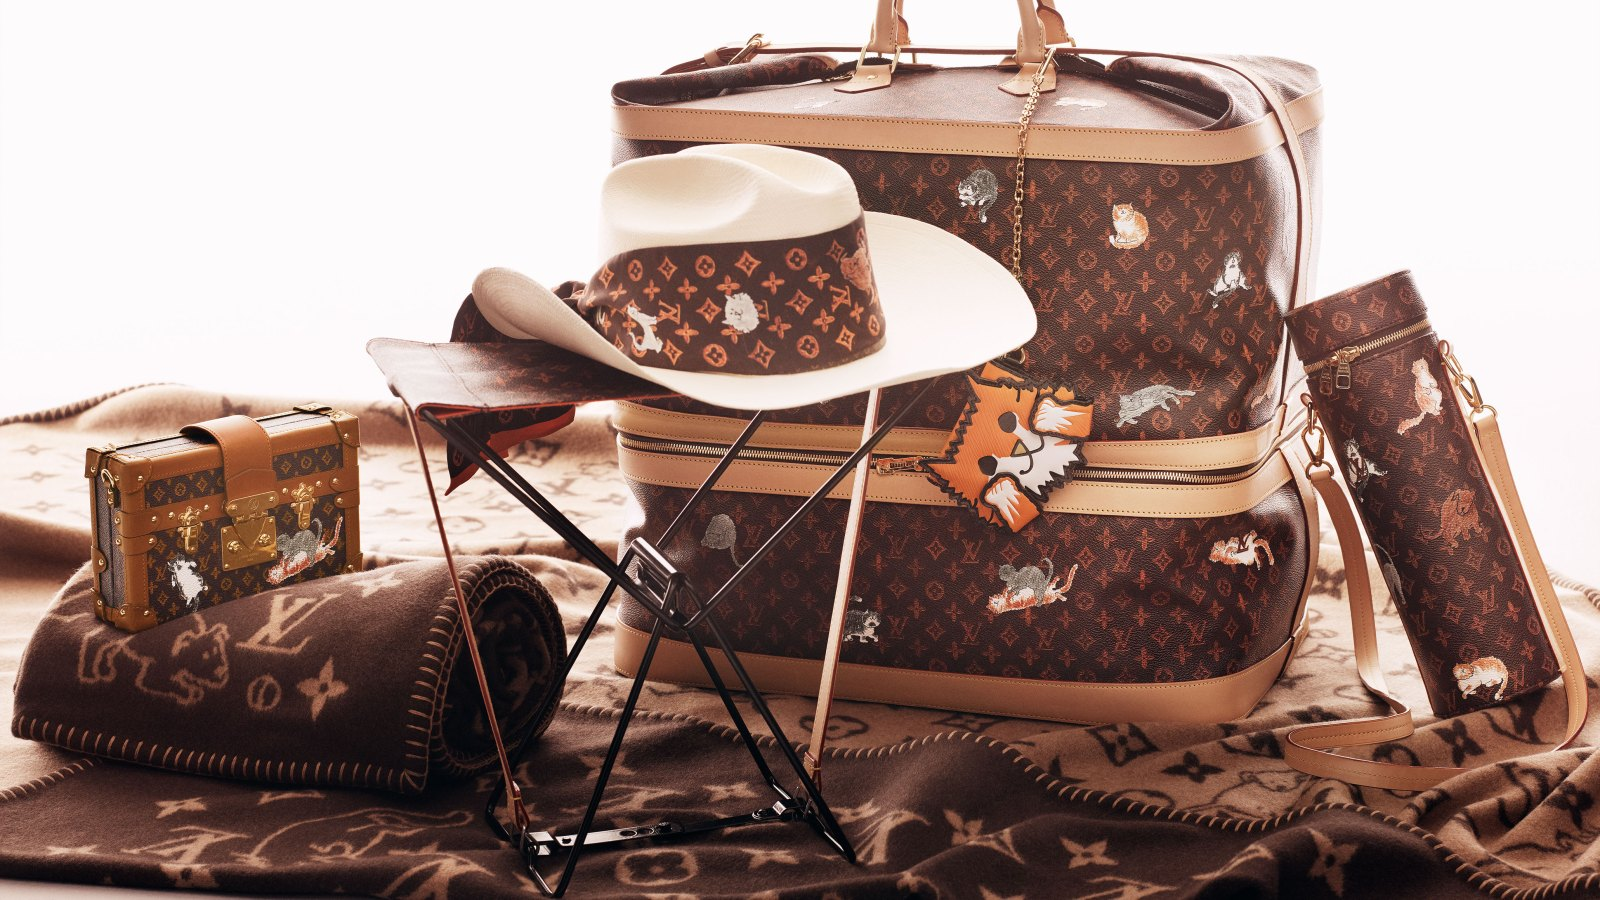 dd8ec9759084 Louis Vuitton and Grace Coddington Teamed Up on an Accessories Collection  for Cat Lovers